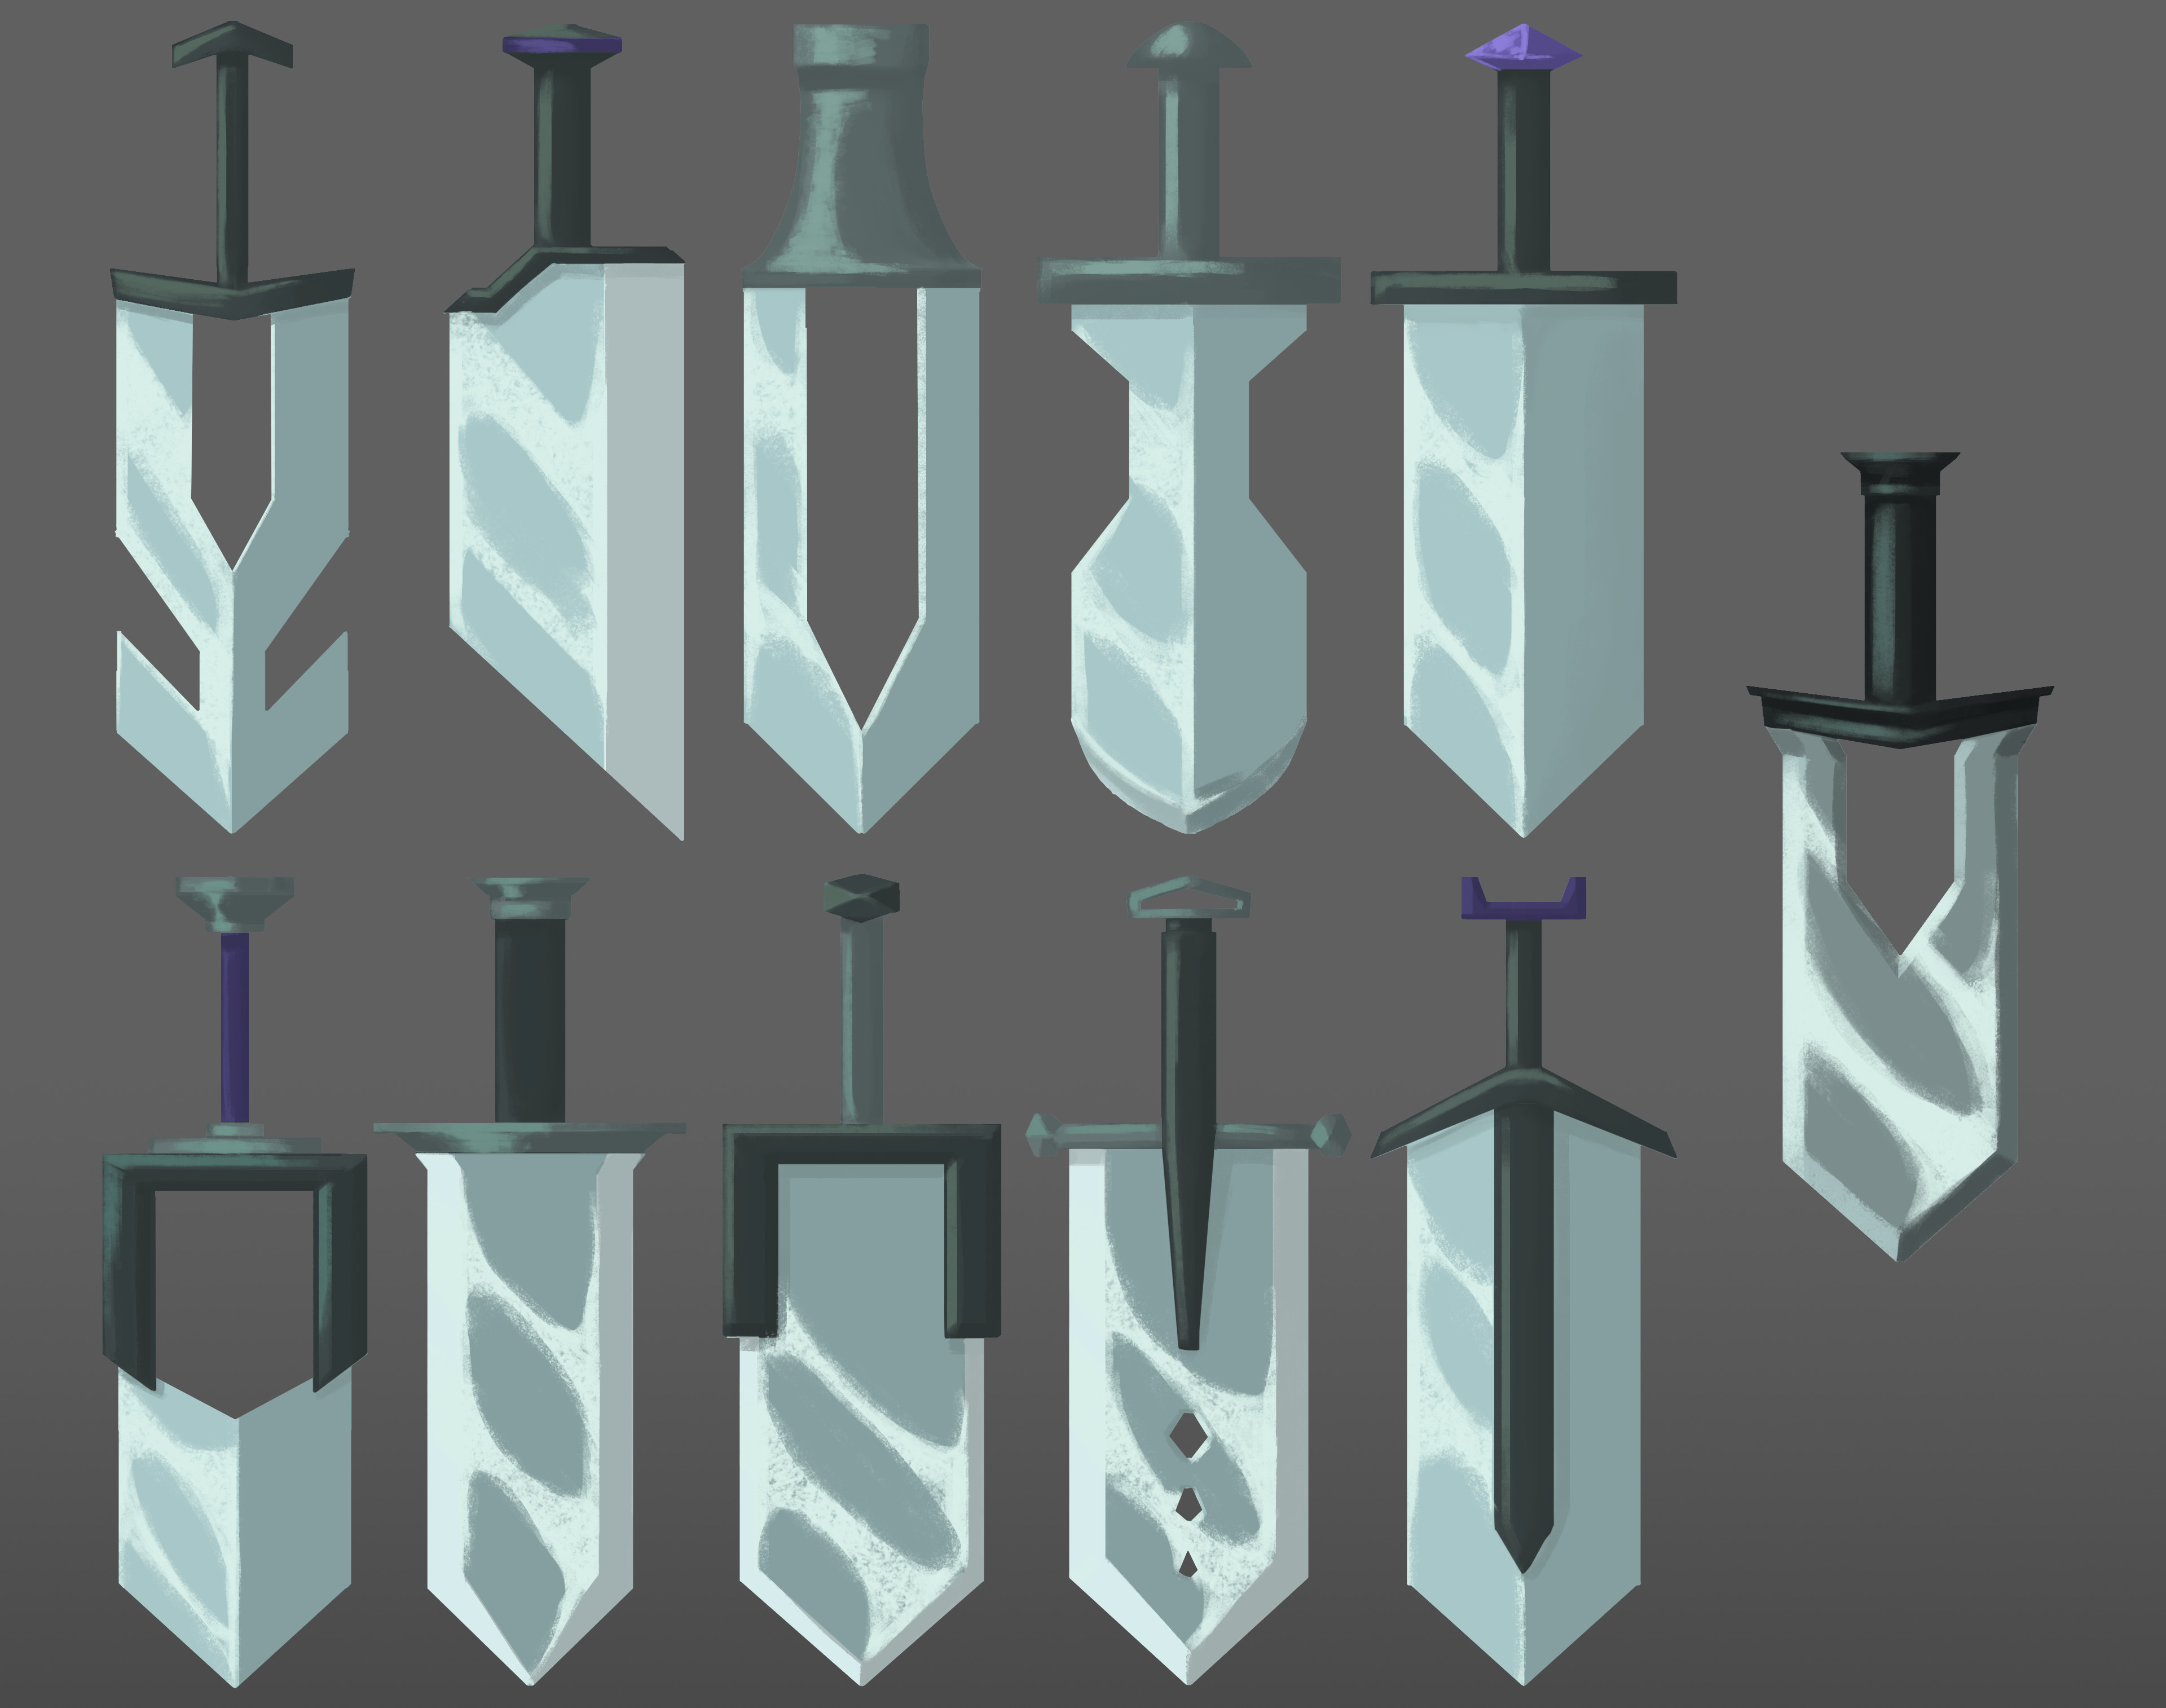 Swords design ideas